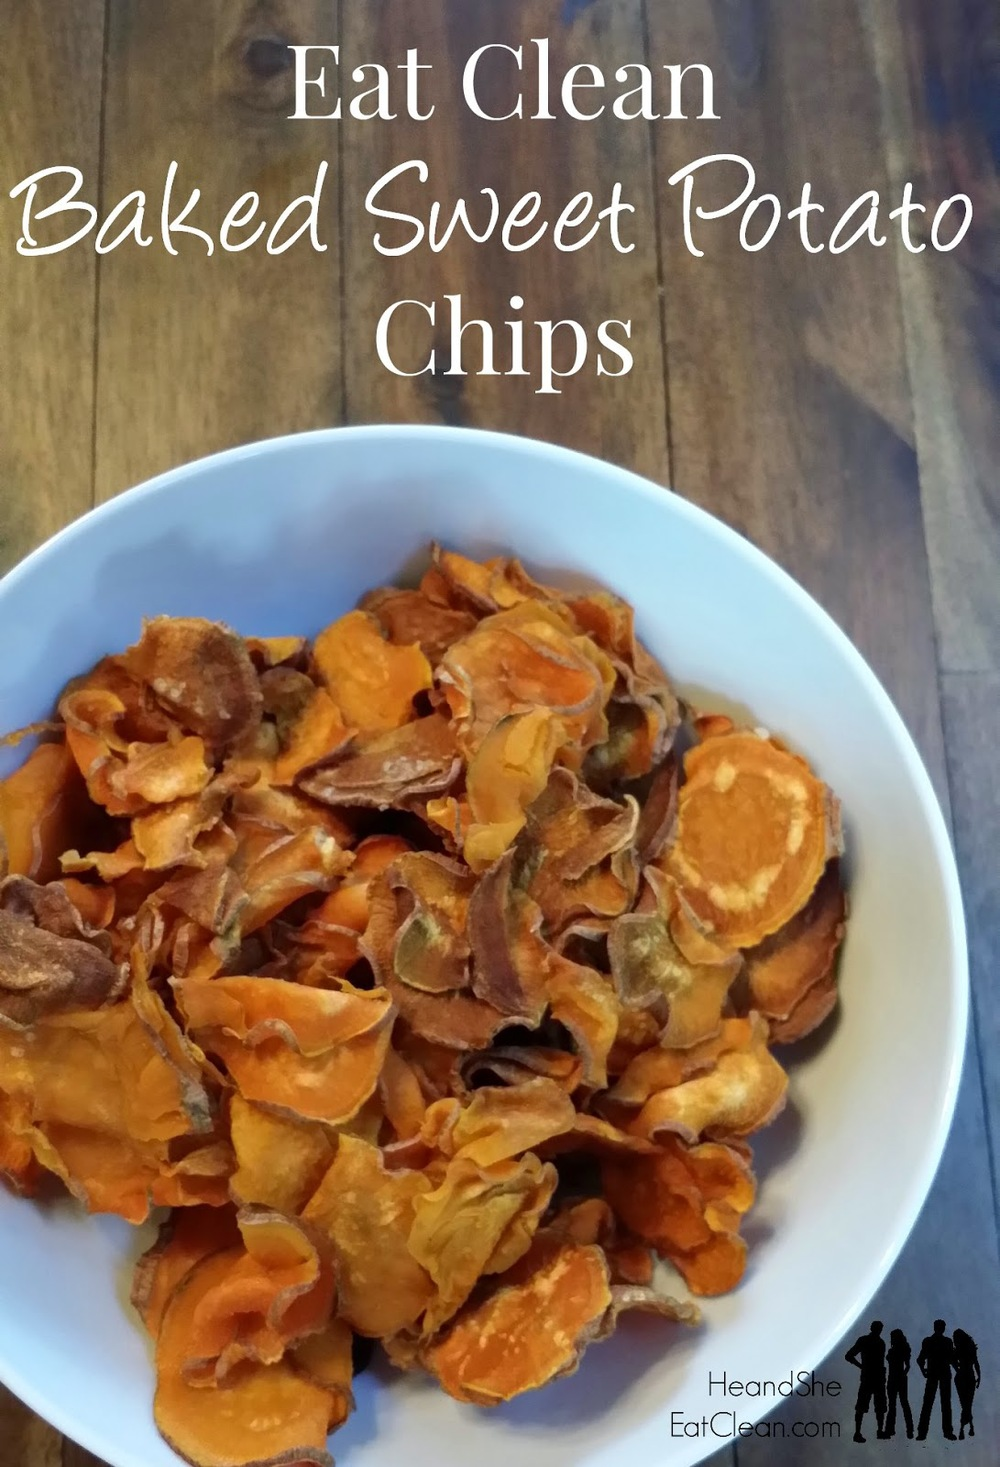 Baked_Sweet_Potato_Chips_How_to_Make_Recipe_for_He_She_Eat_Clean_Paleo_Gluten_Free.jpg